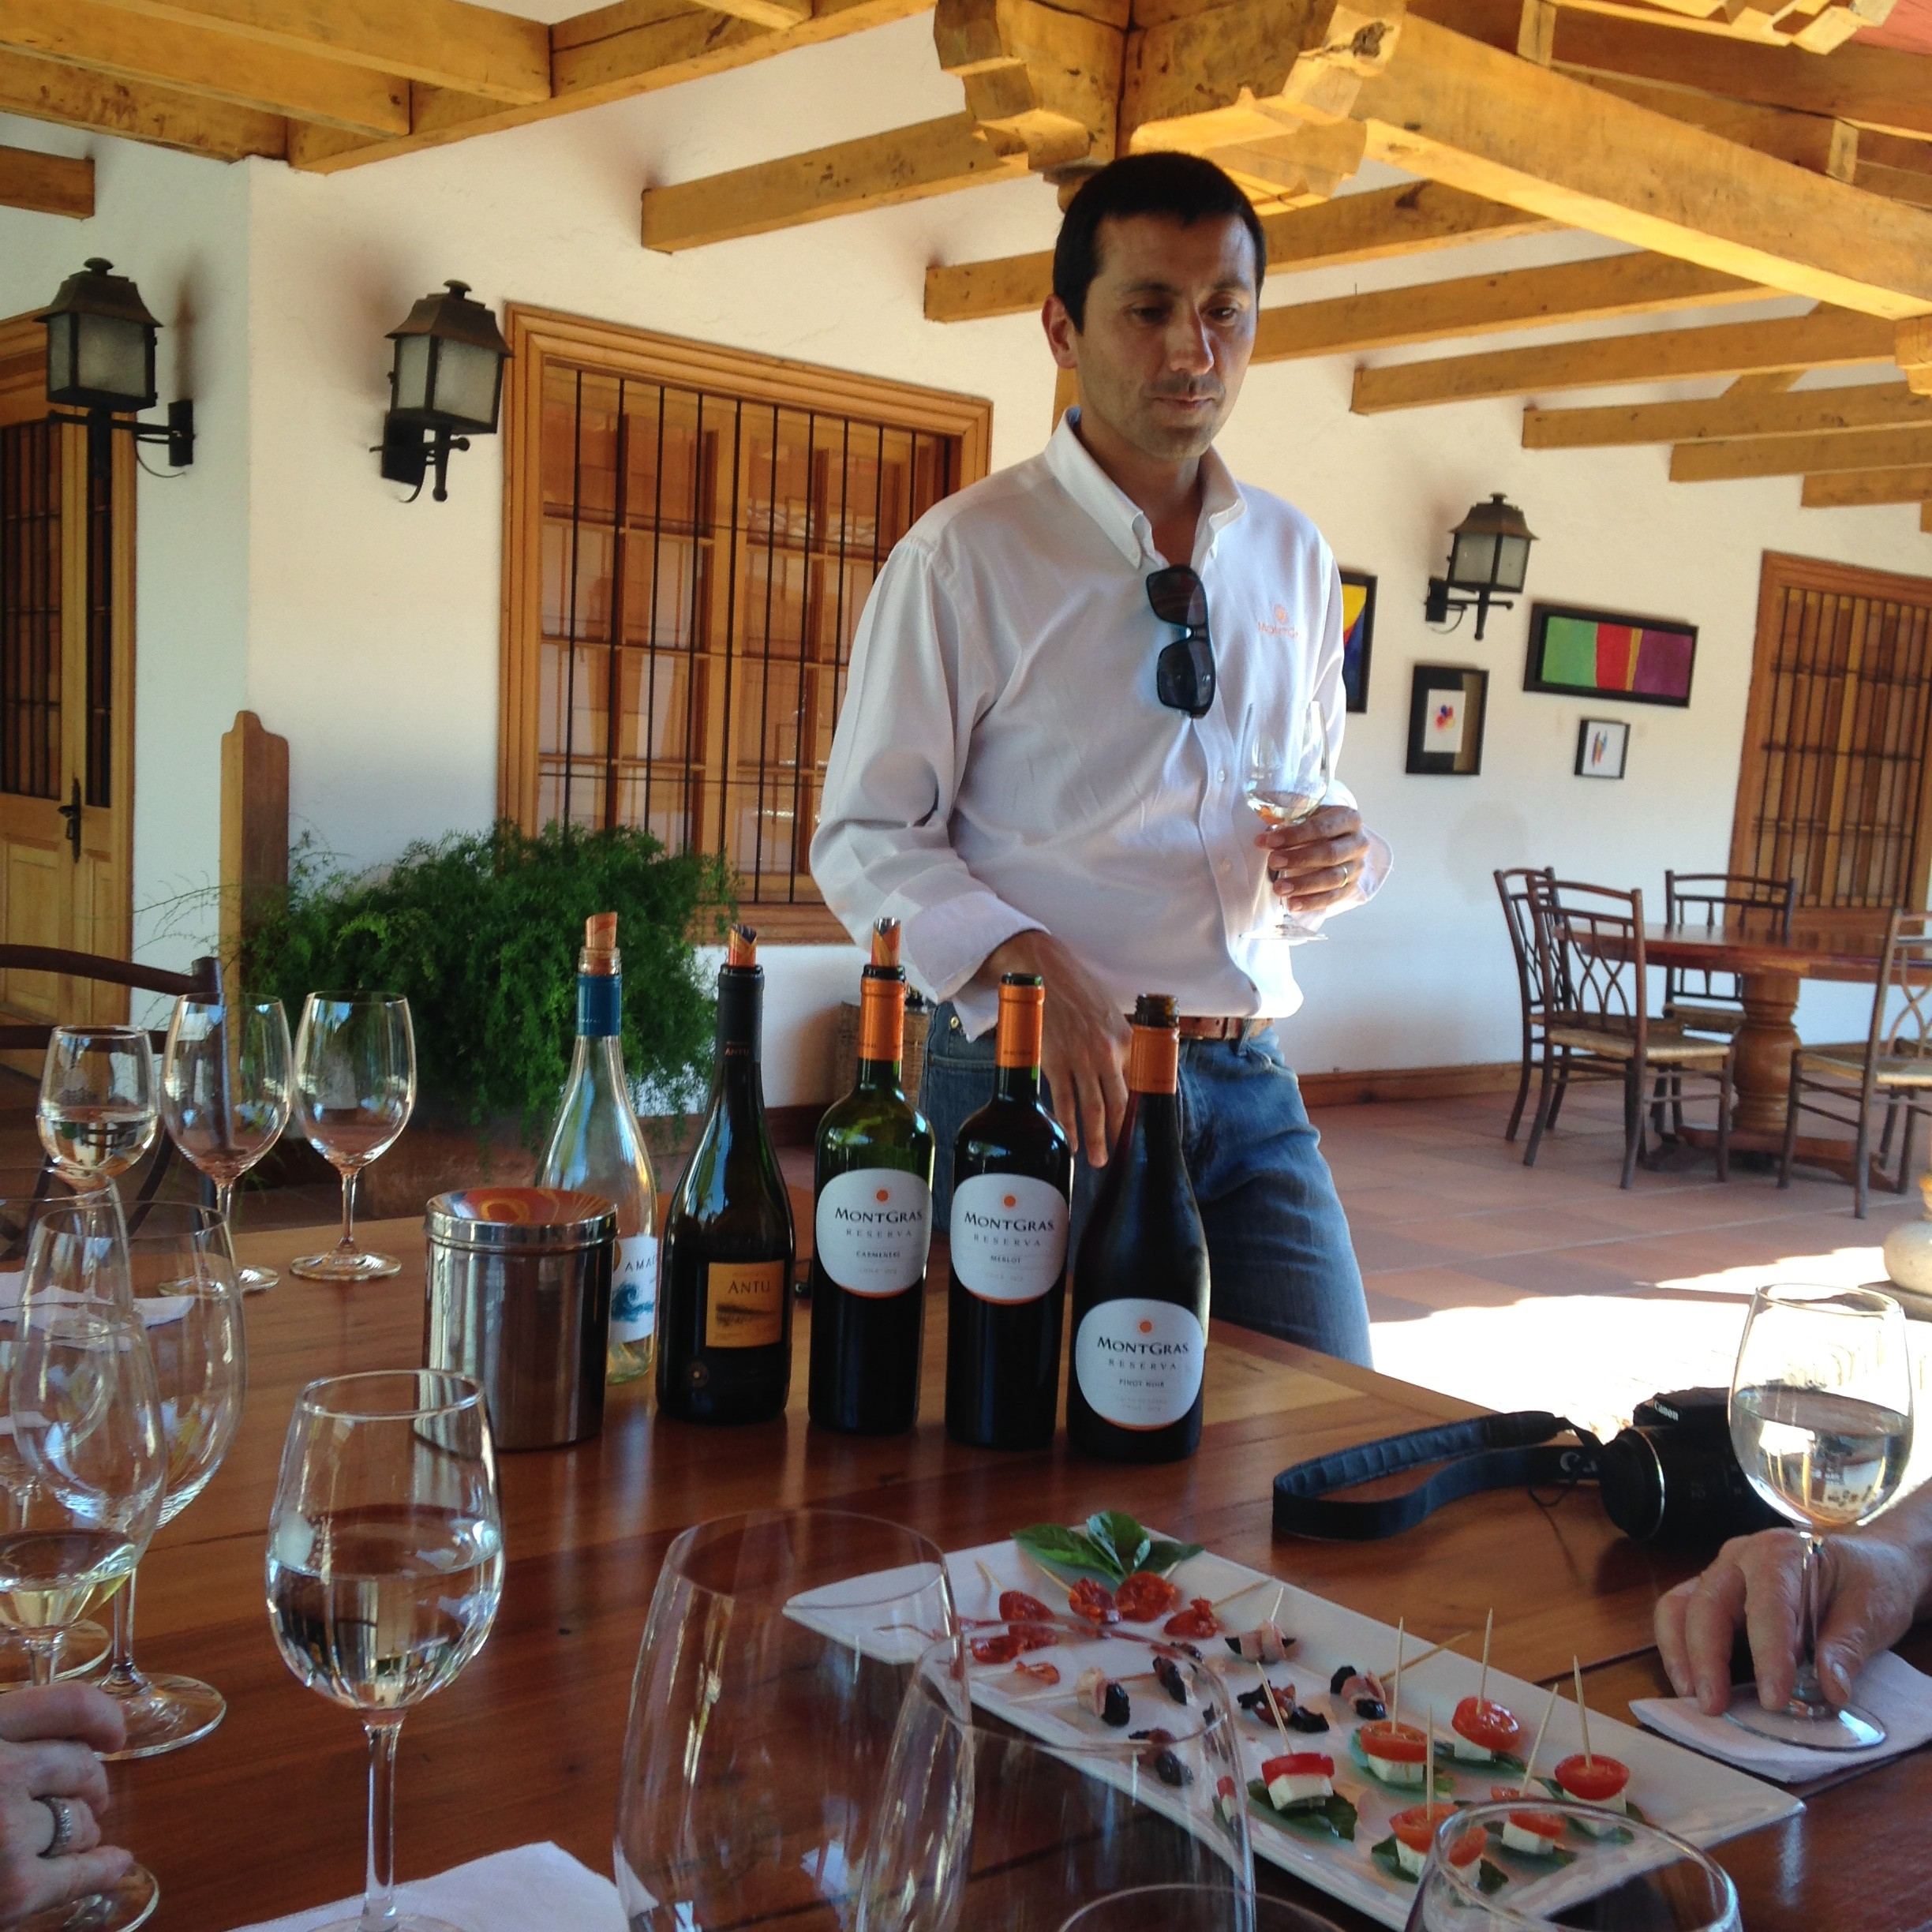 Tasting at Viu Manent wineries, Colchagua Valley